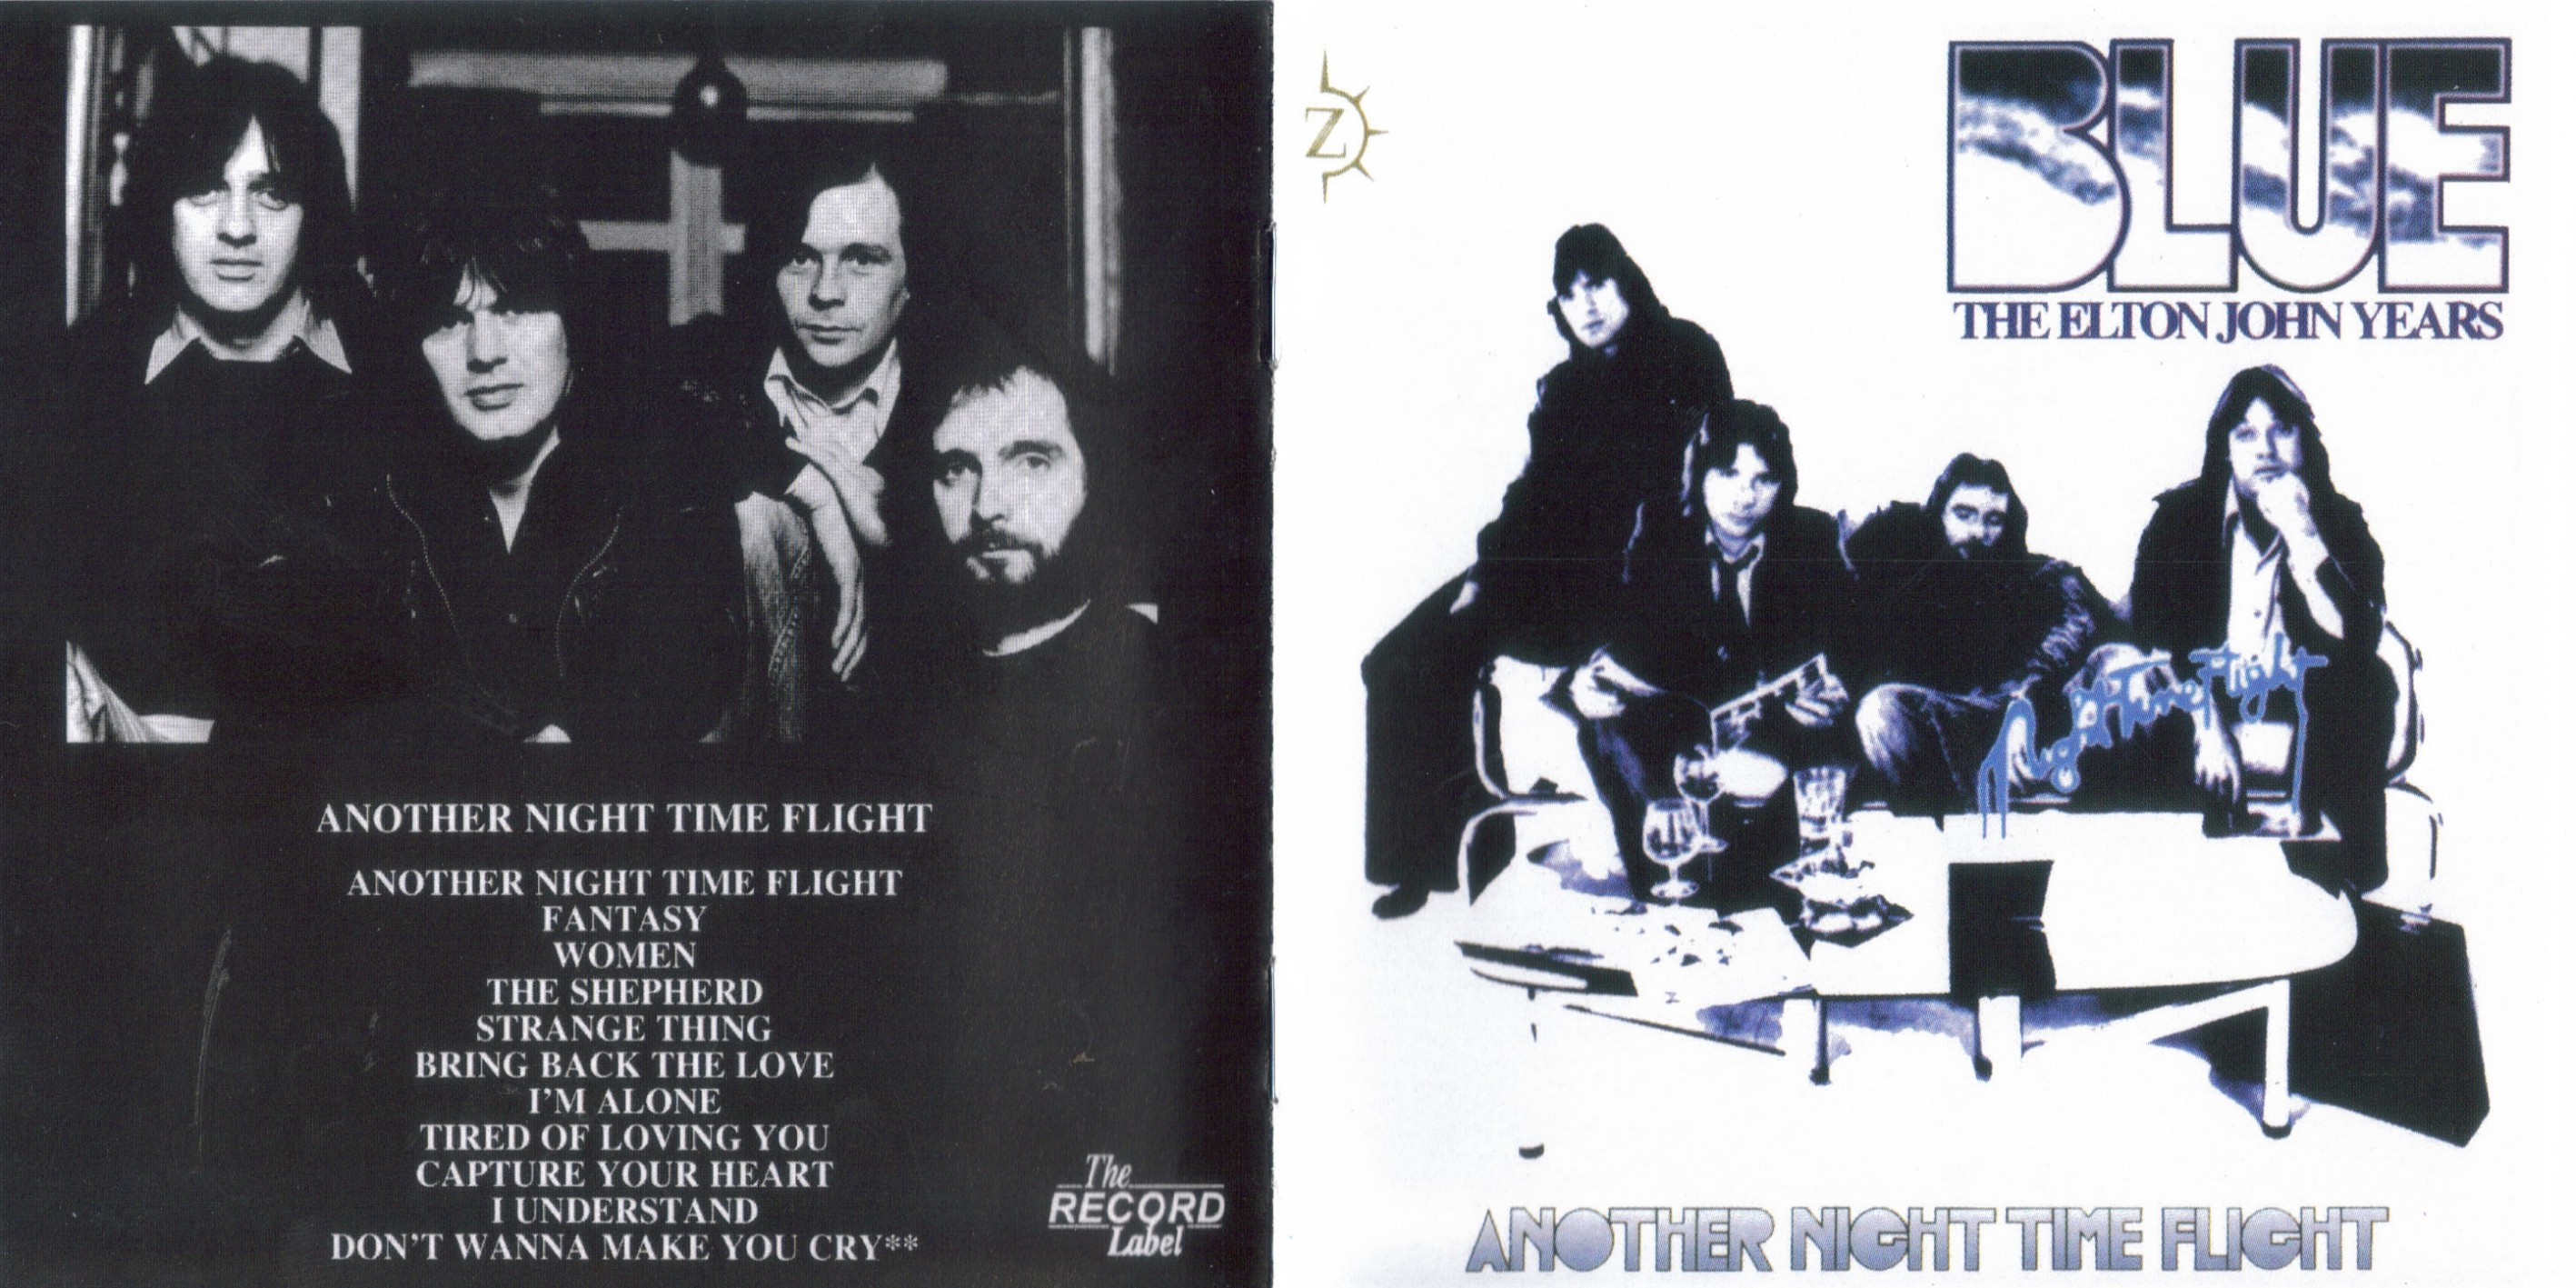 Blue - Another Night Time Flight (The Elton John Years) - Booklet (1-4)